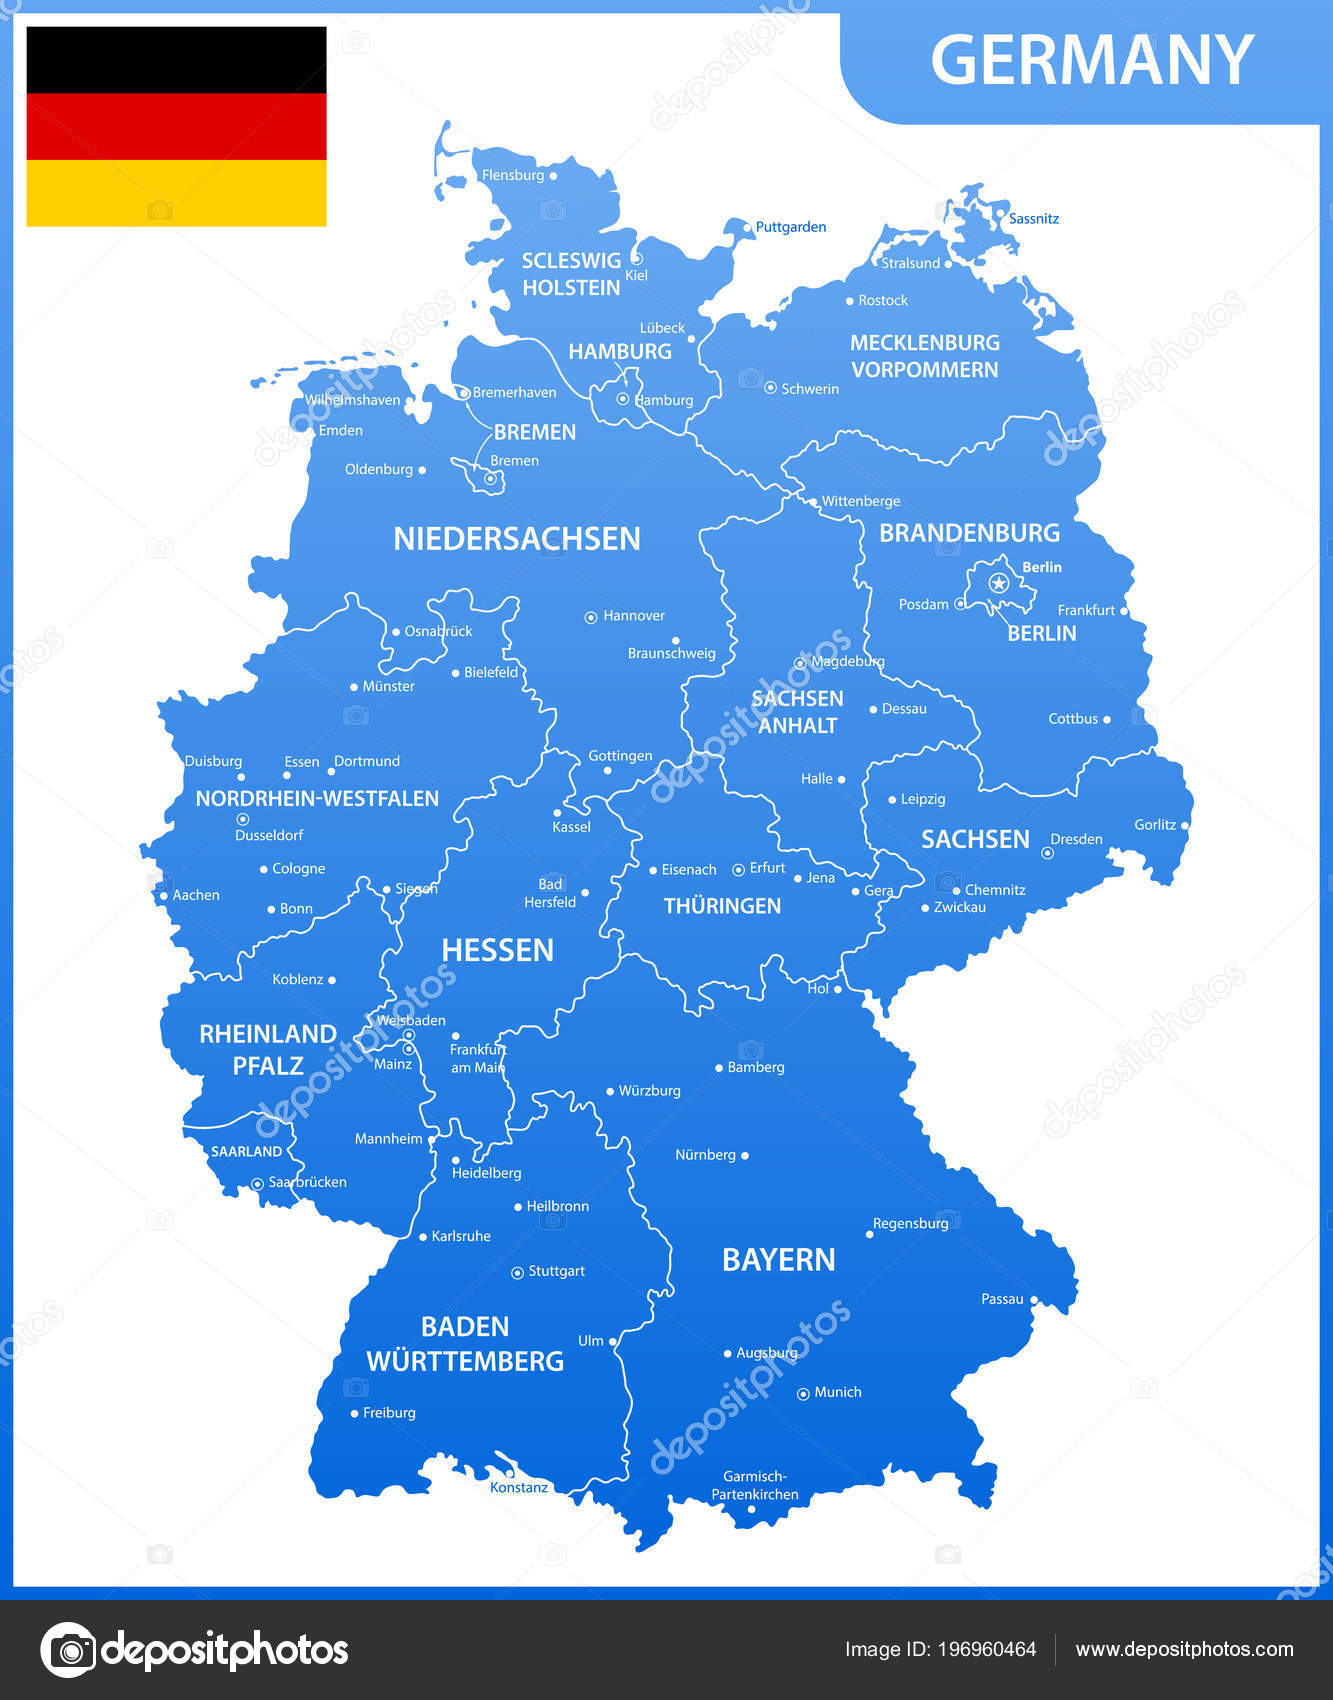 Regions Of Germany Map.Detailed Map Germany Regions States Cities Capitals National Flag